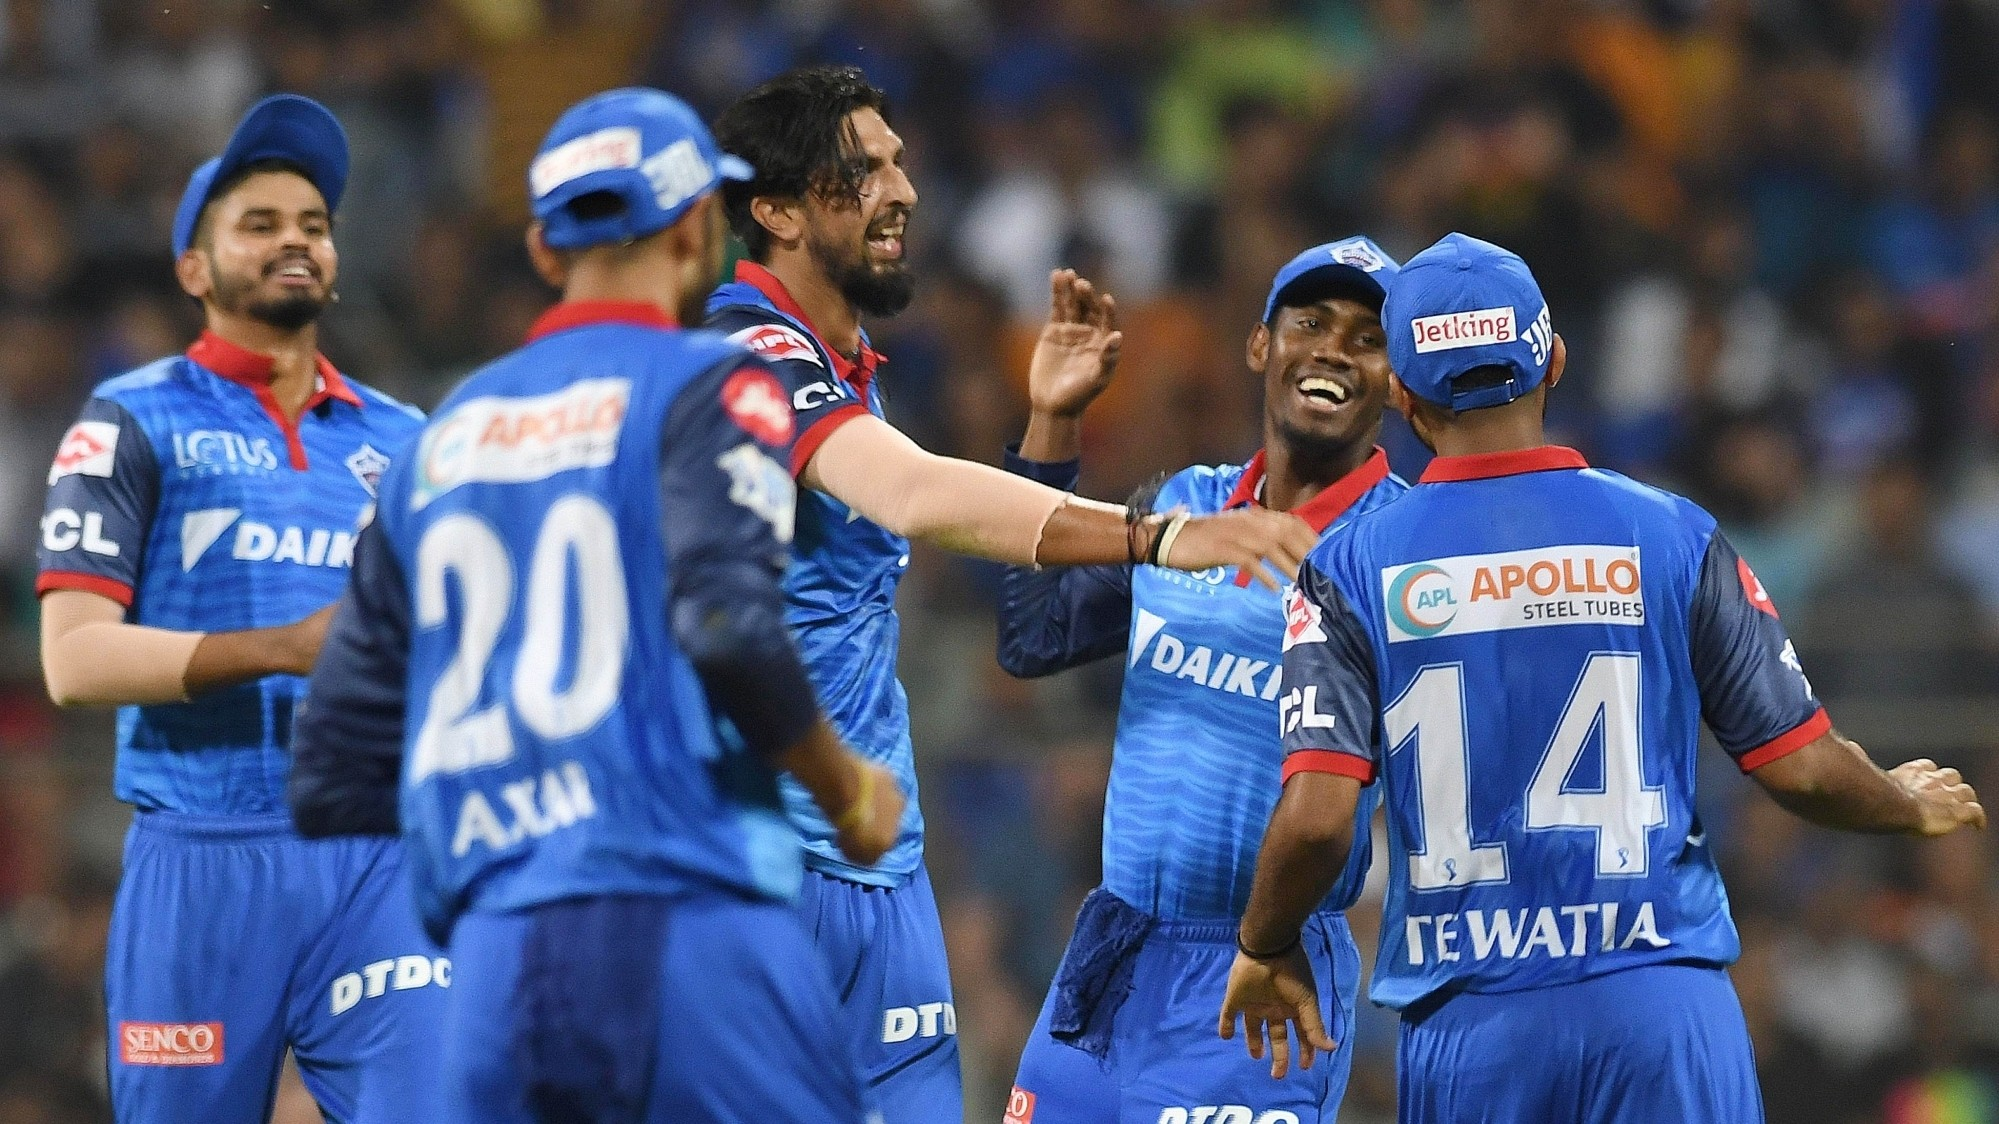 IPL 2020: Assistant physio of Delhi Capitals tests COVID-19 positive